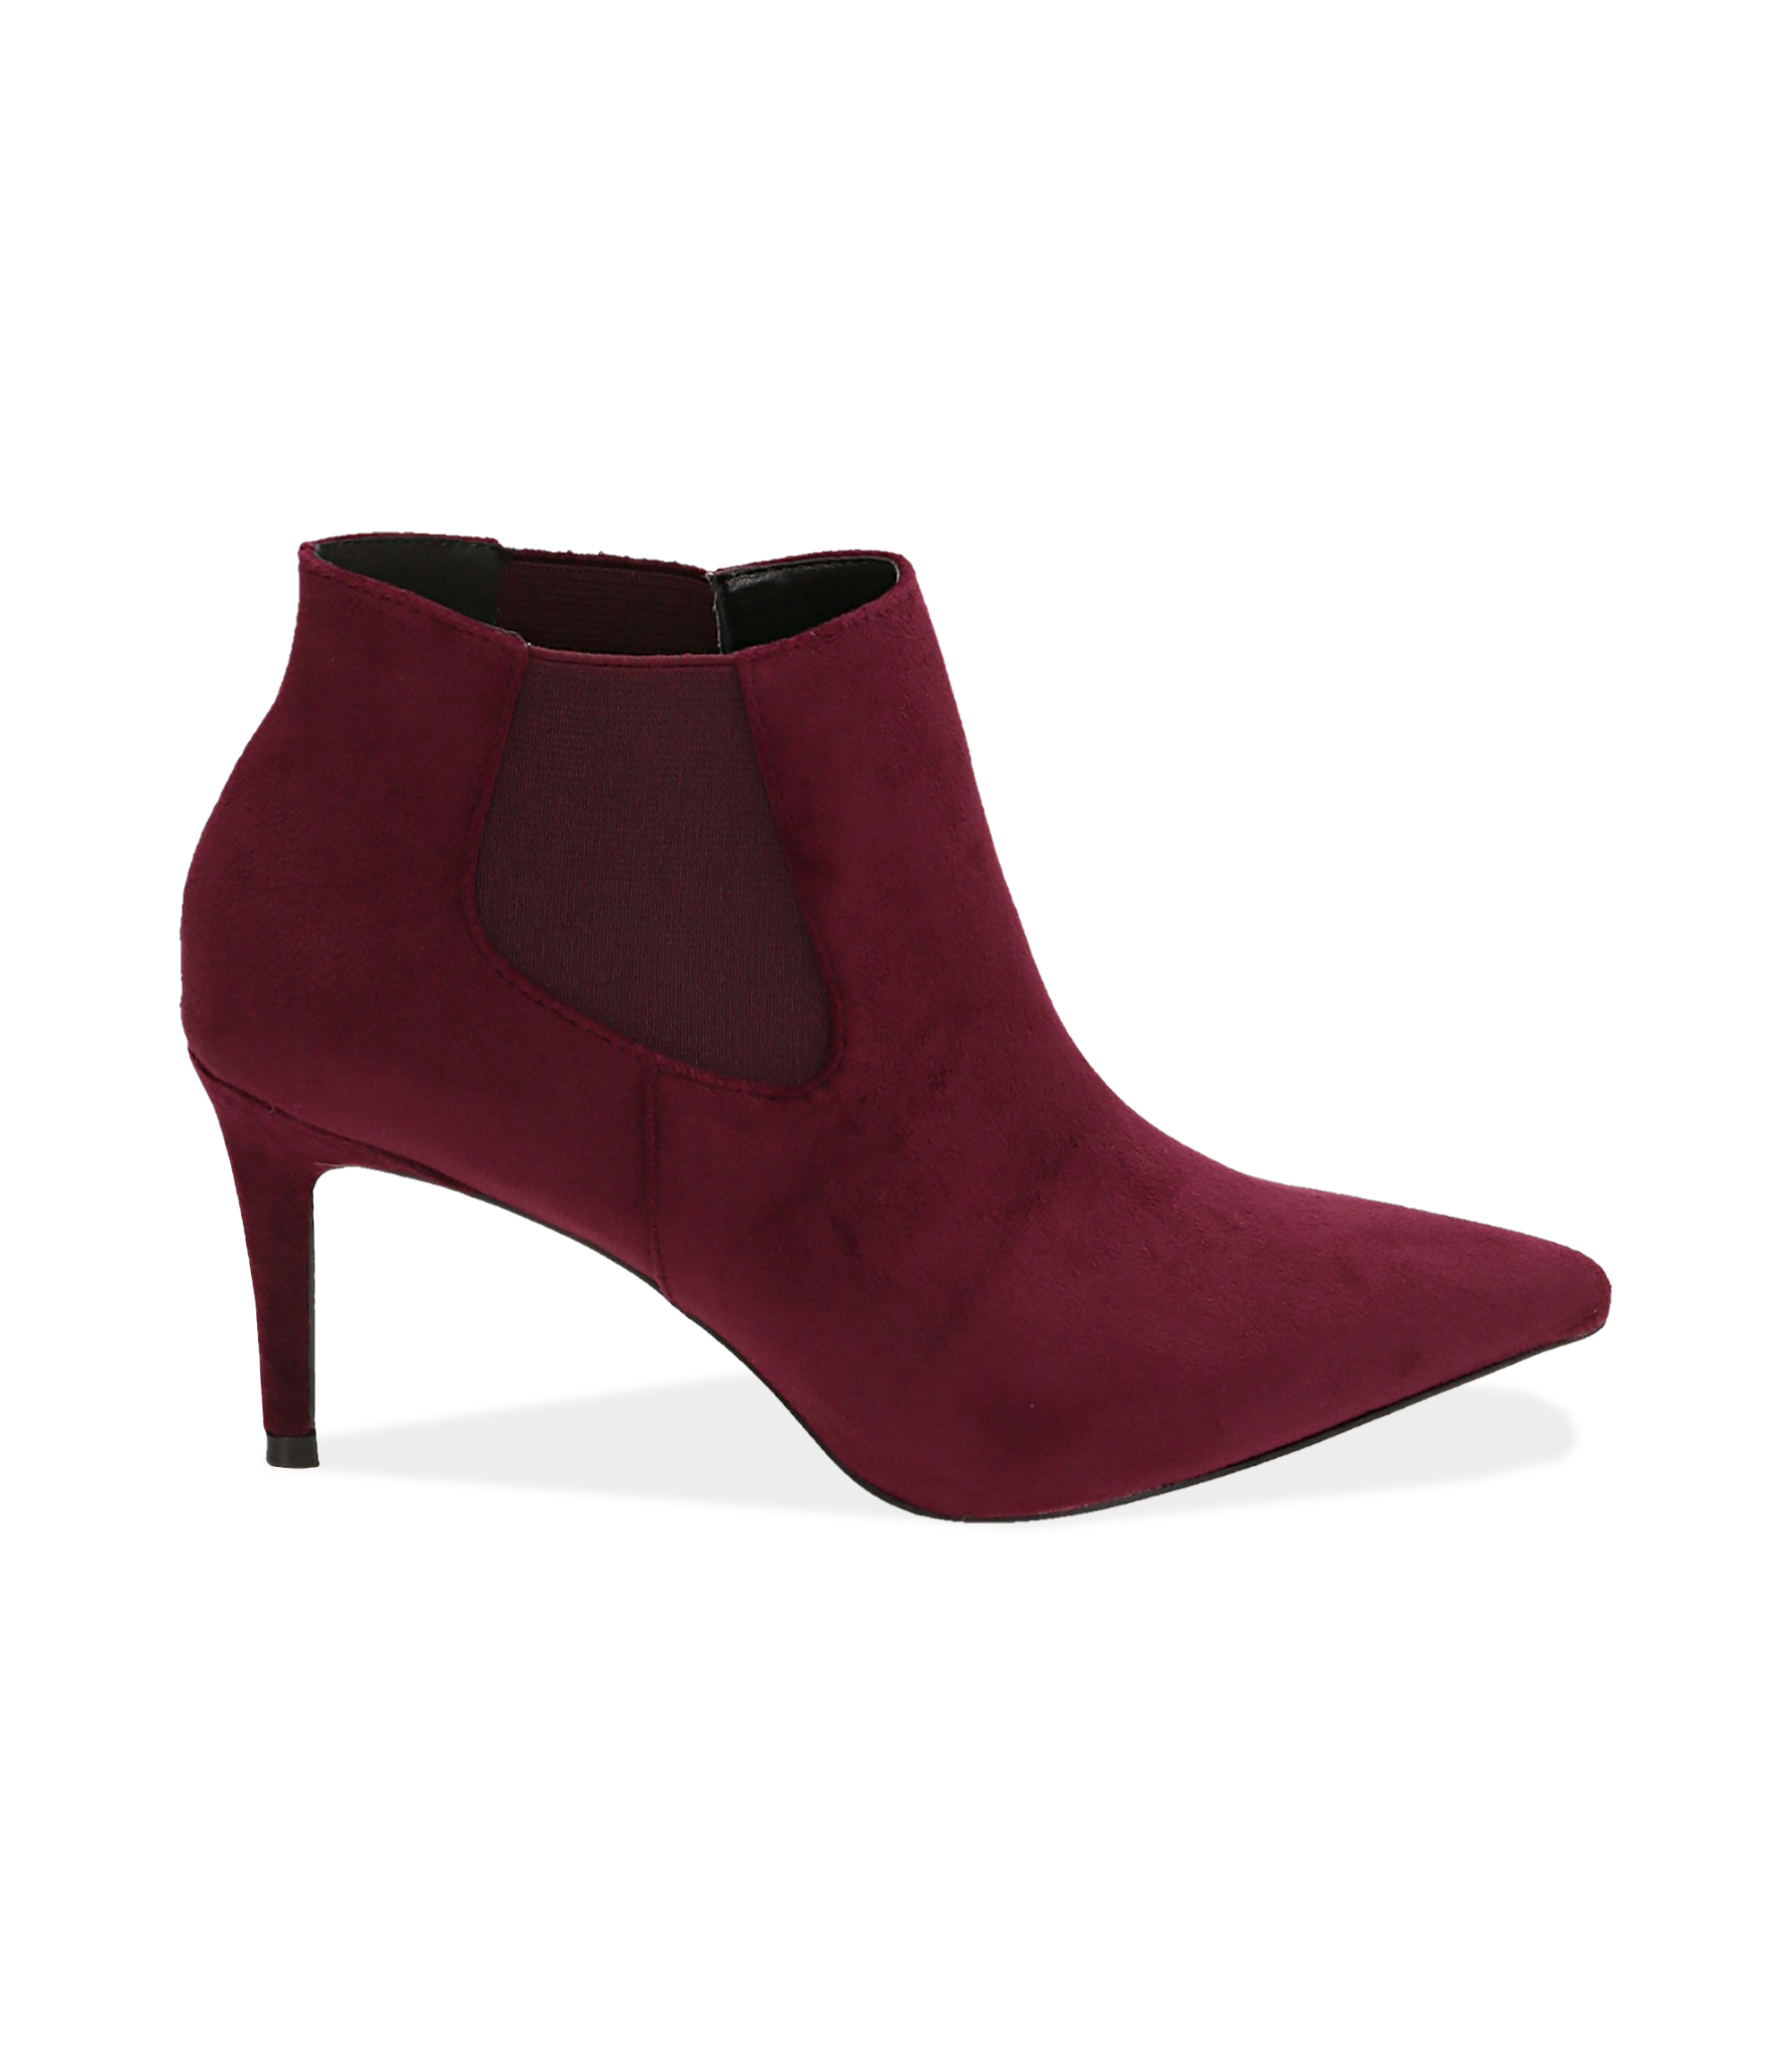 Ankle boots bordeaux in velluto